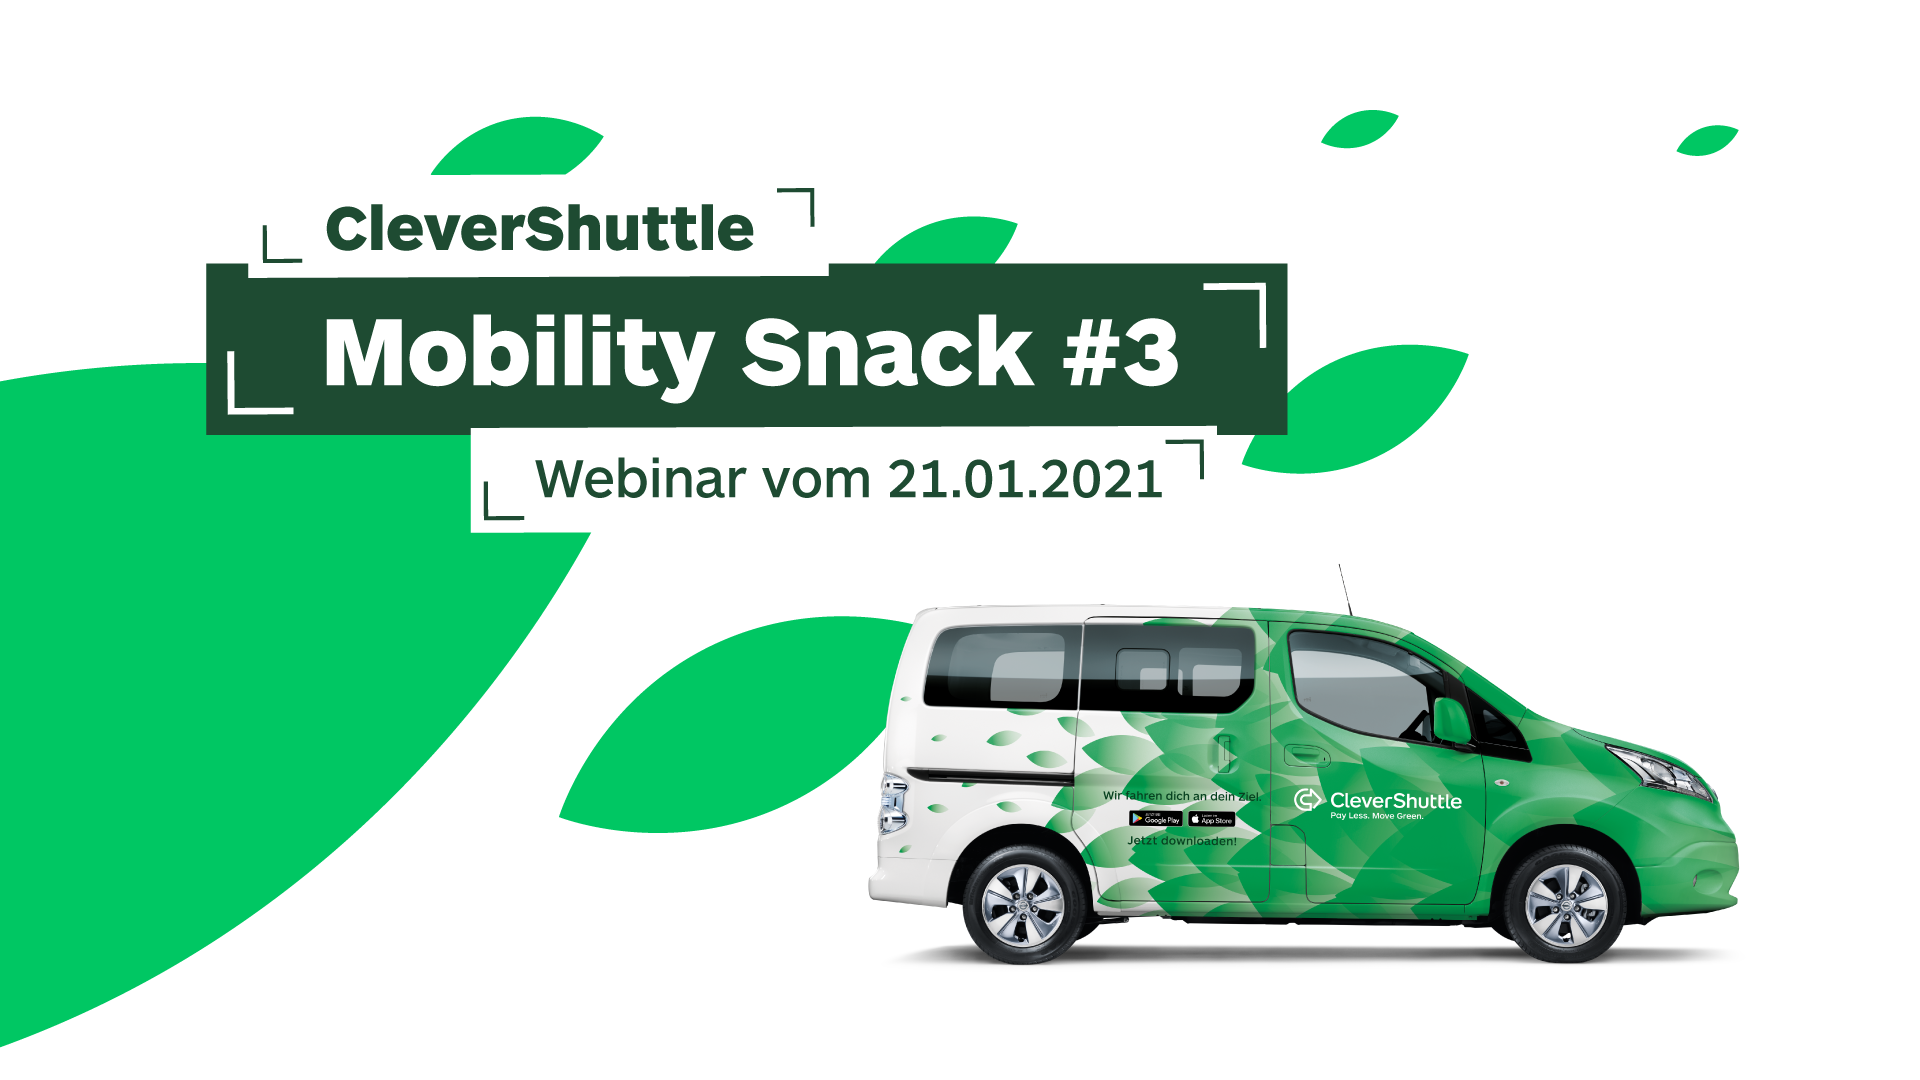 Clever Shuttle Mobility Snack 3